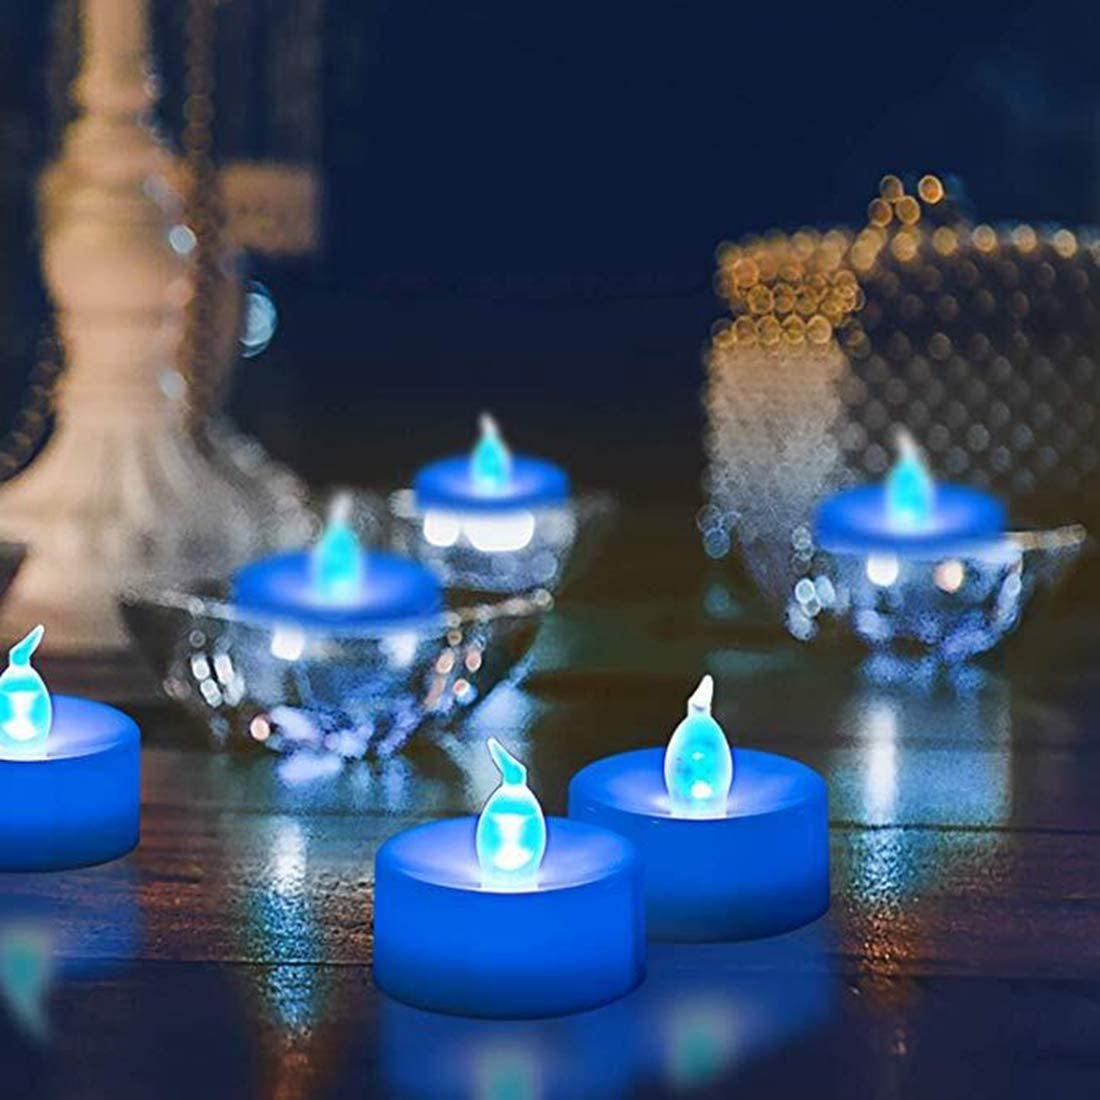 Flameless LED Tealight,Set of 36,Realistic Blue Flickering LED Candle with Timer,Battery Operated Flickering LED Candle for Halloween,Wedding,Christmas,Table Dinning,Home Decor